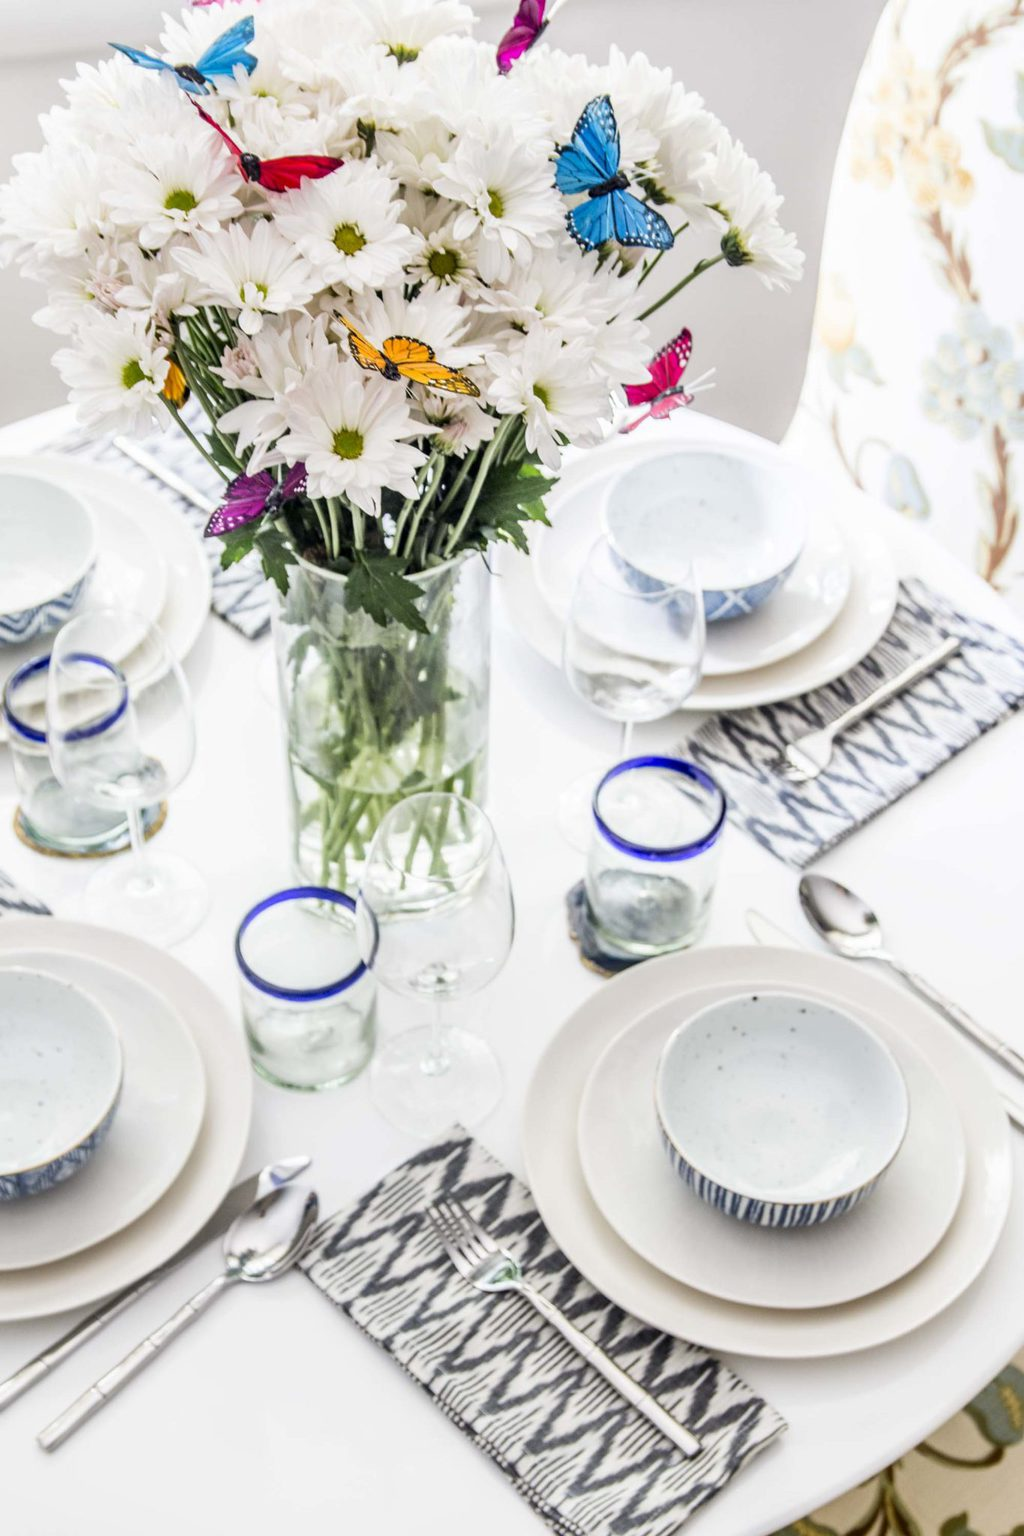 Pattern happy table setting with whimsical flower arrangement of daisies and butterflies on Thou Swell @thouswellblog